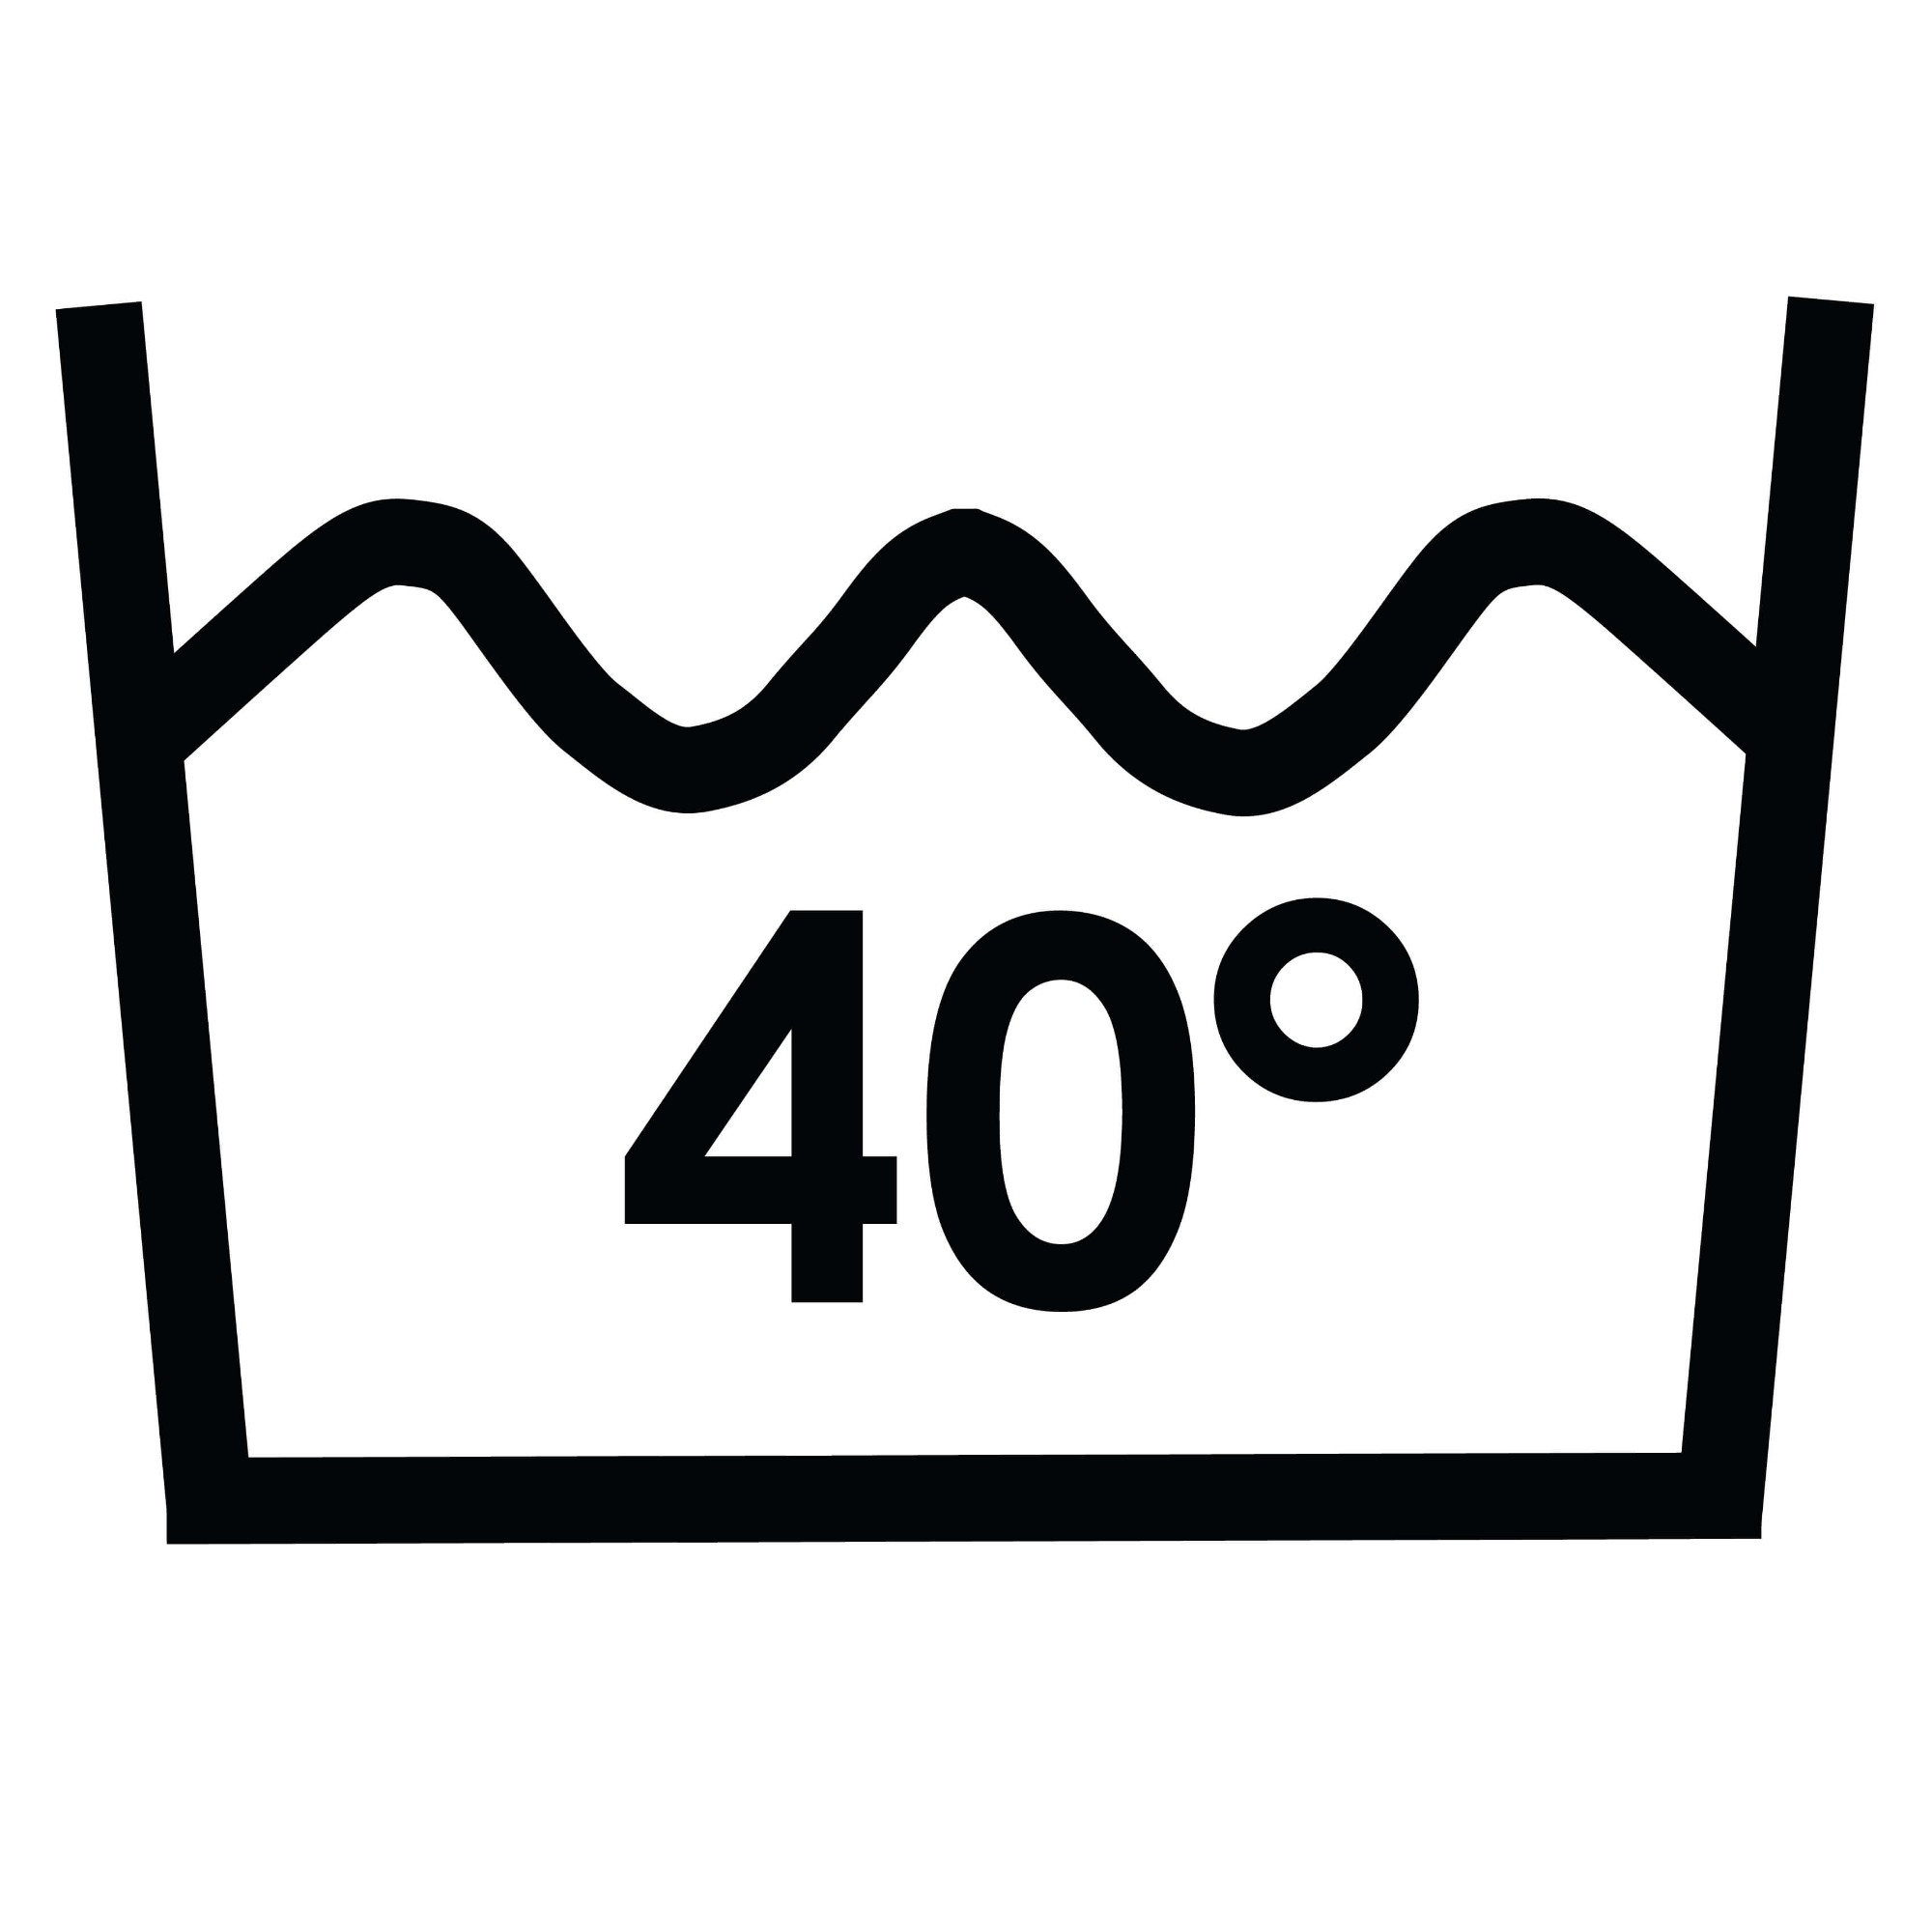 Wash temperature 40°C